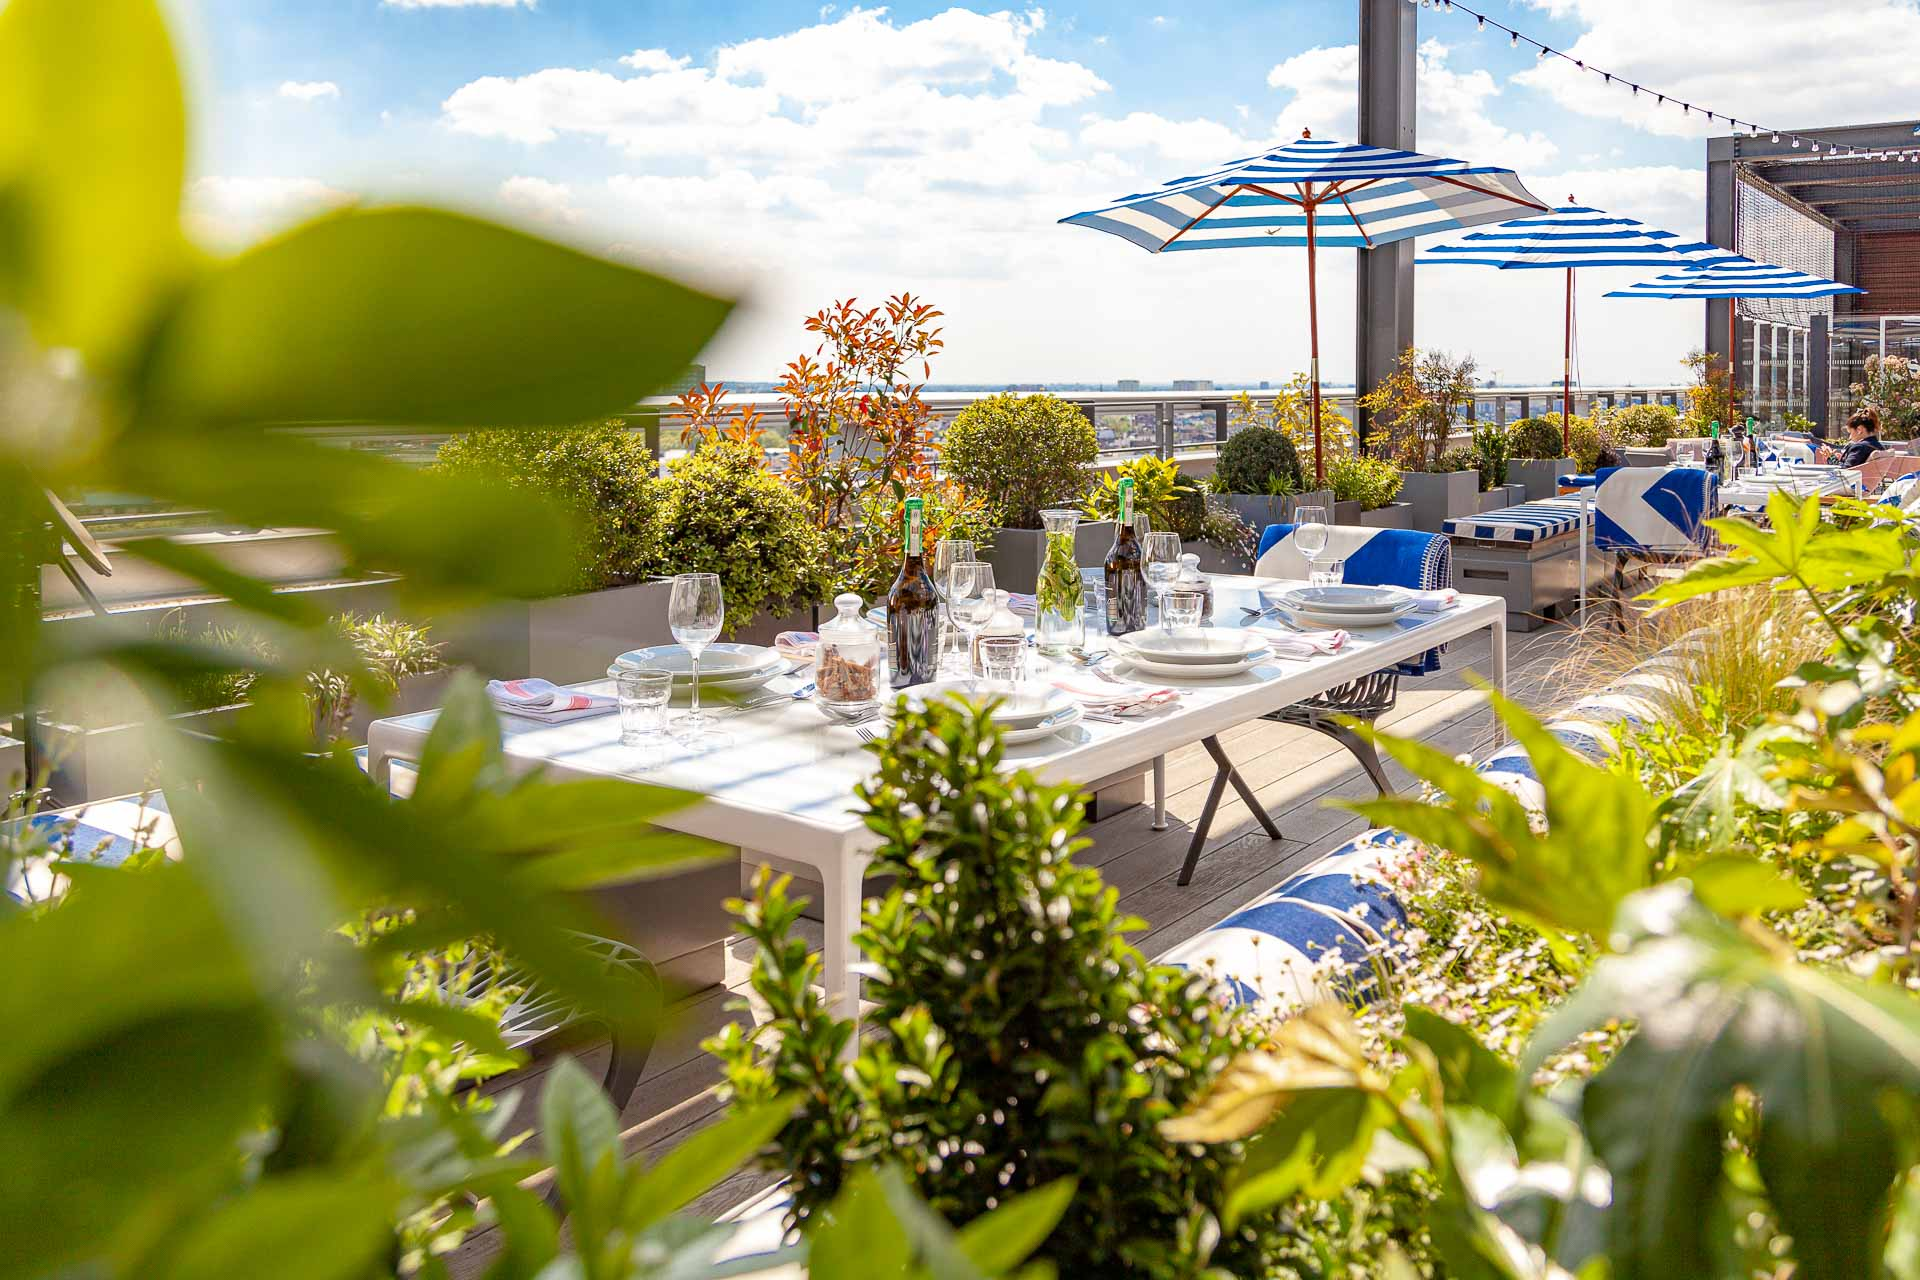 Skylark Roof Garden, Rooftop Cocktail Bar and Restaurant in Paddington West London W2